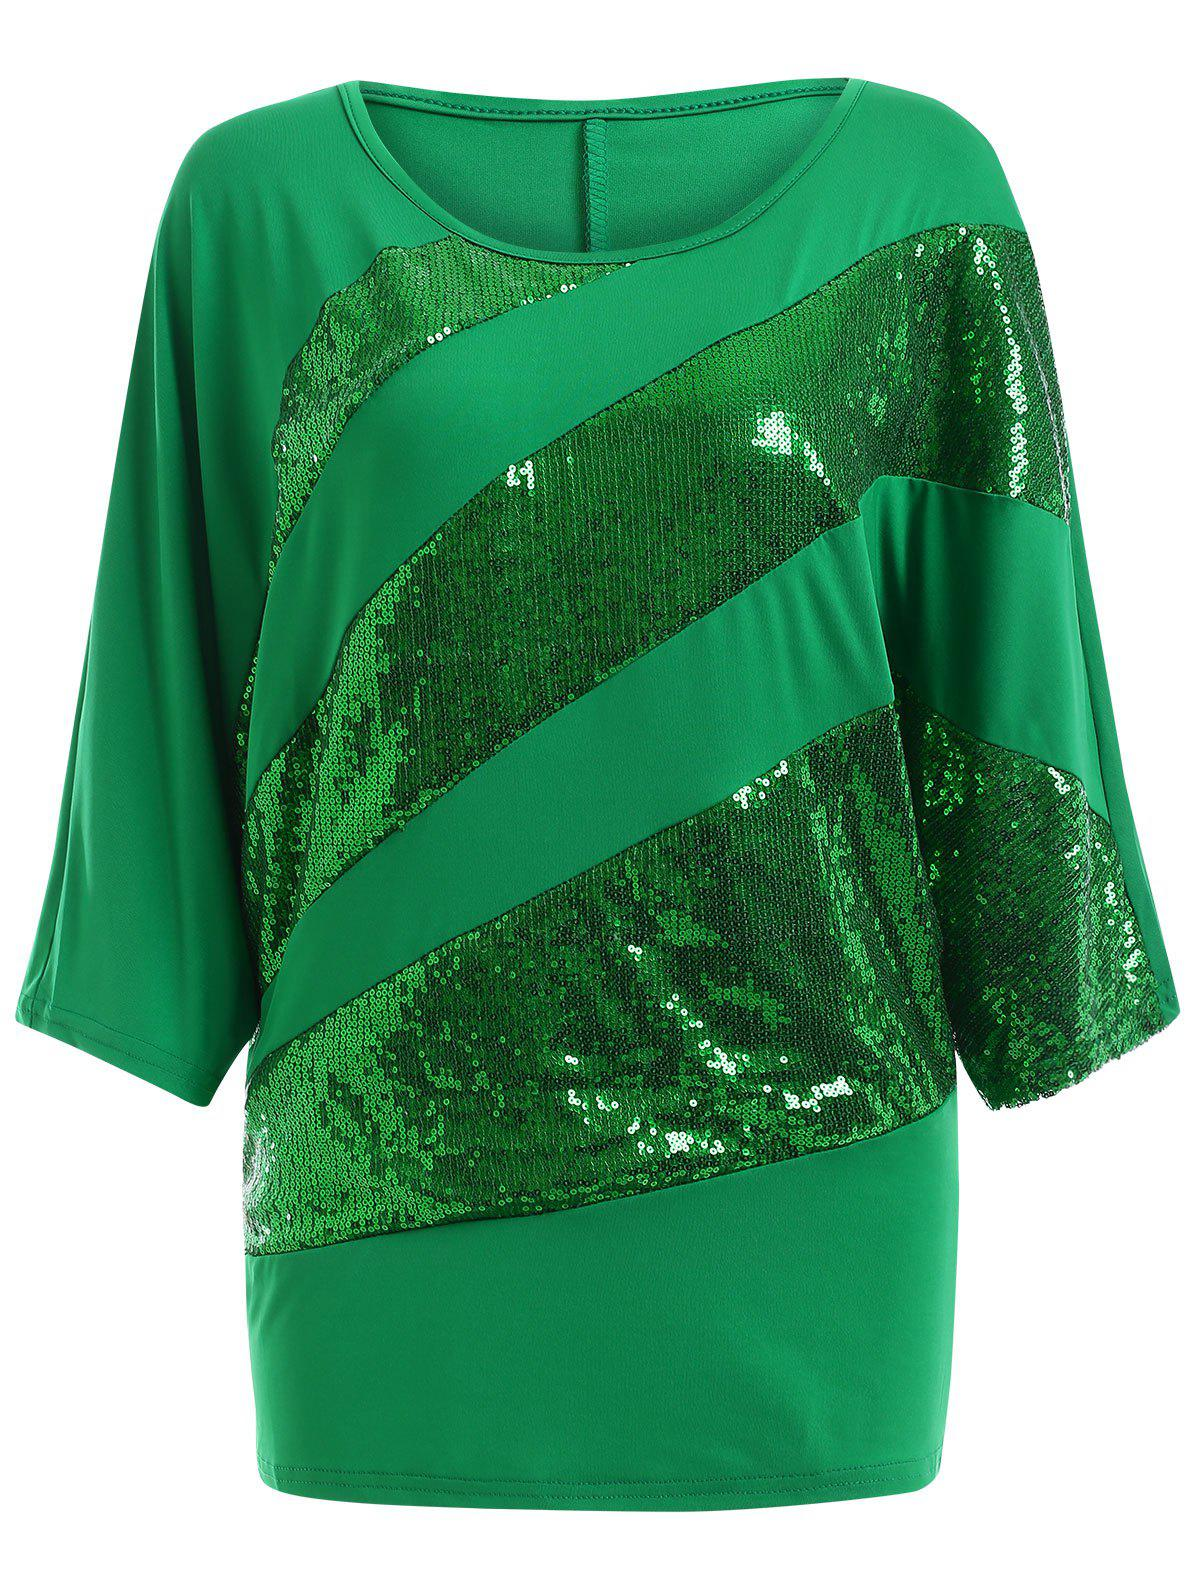 Sequin Embellished Loose TopWOMEN<br><br>Size: M; Color: GREEN; Material: Cotton Blends; Shirt Length: Long; Sleeve Length: Three Quarter; Collar: Scoop Neck; Style: Casual; Season: Summer; Embellishment: Sequined; Pattern Type: Solid; Weight: 0.2980kg; Package Contents: 1 x Top;